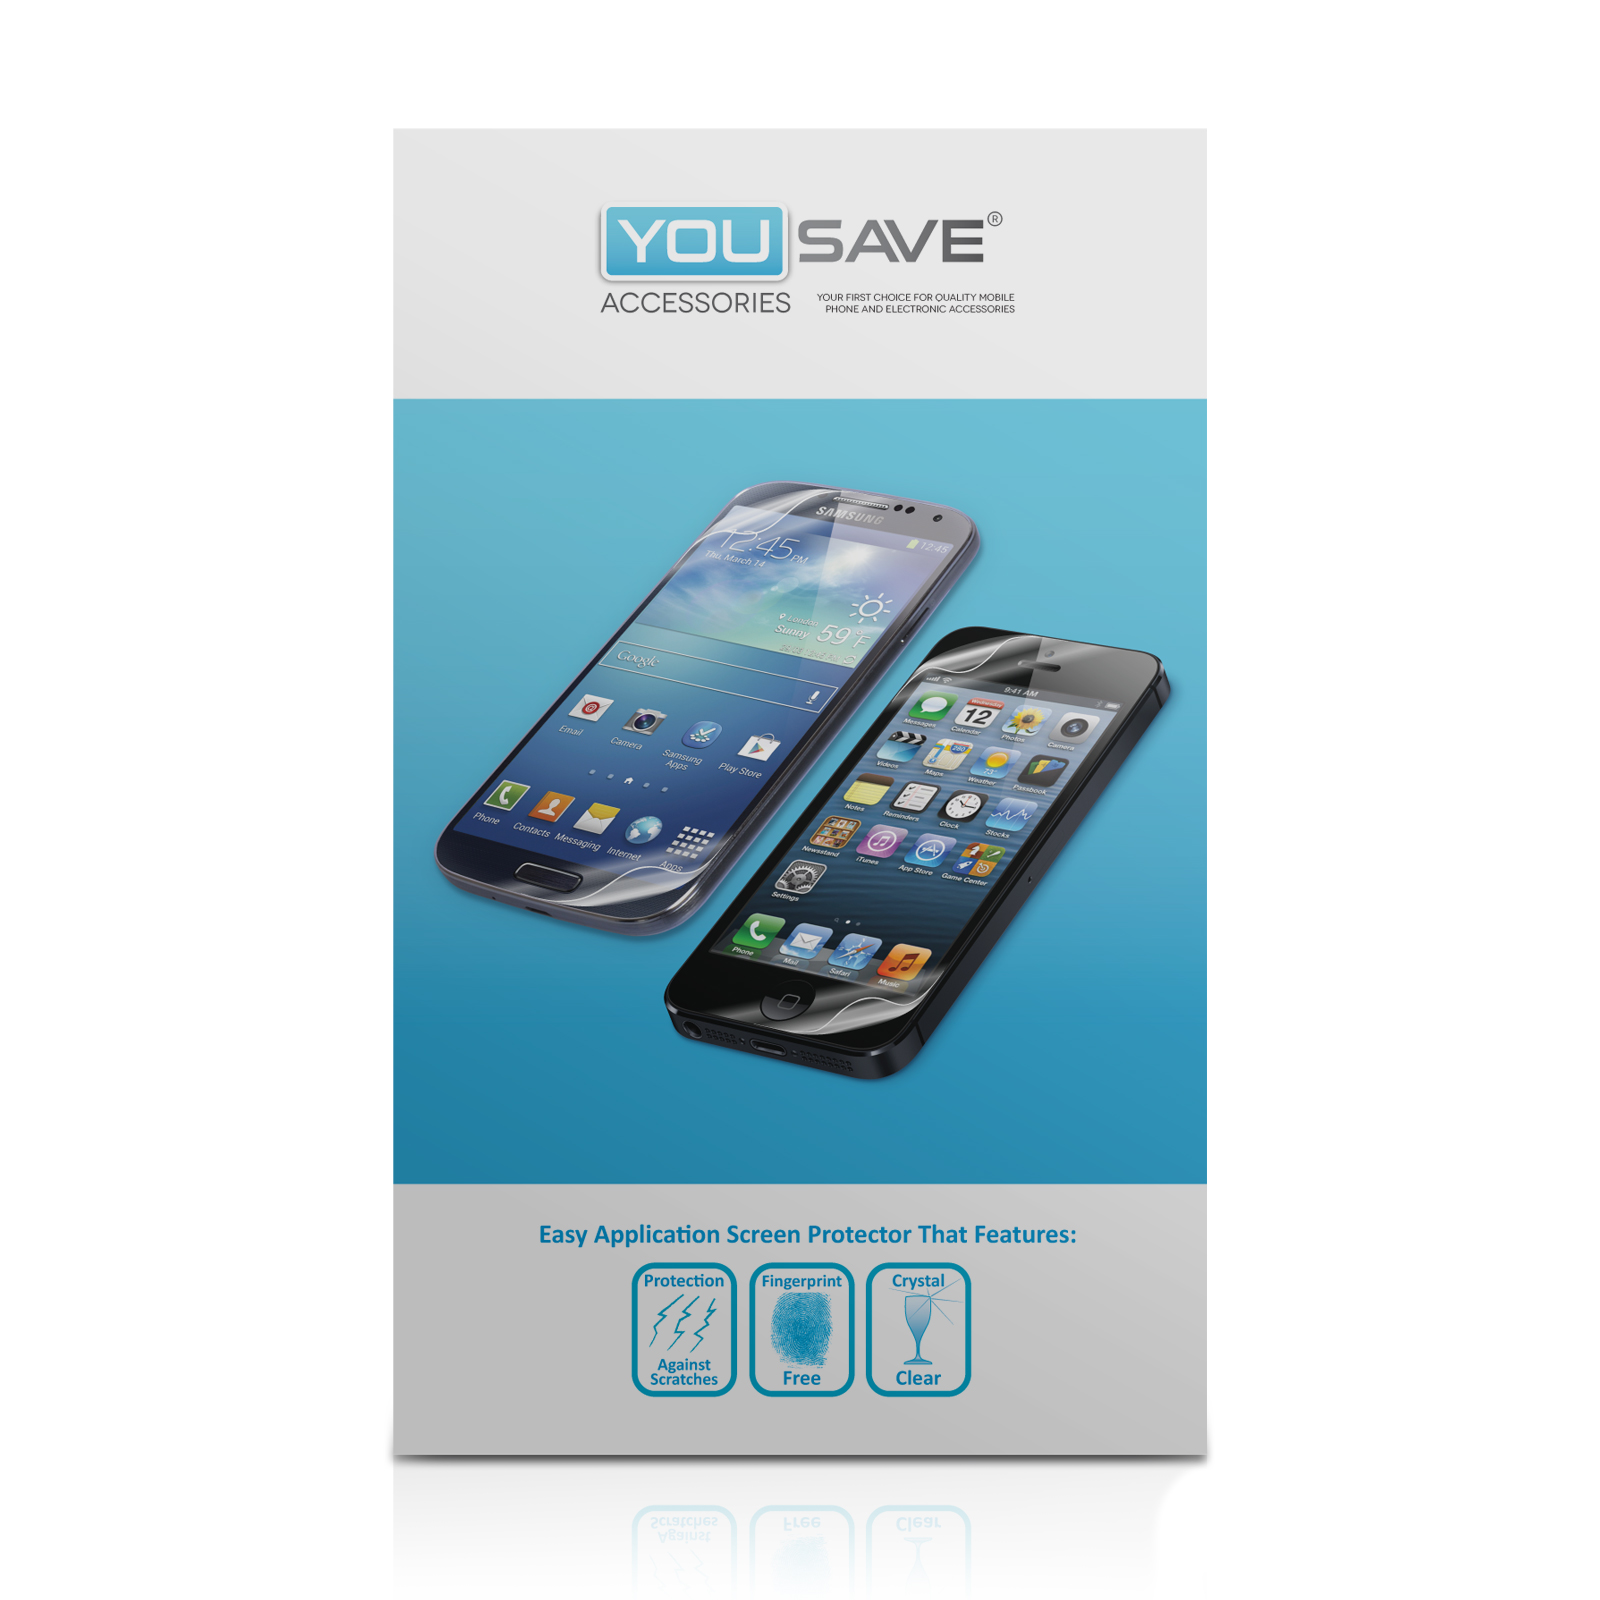 YouSave Accessories Nokia Lumia 625 Screen Protectors x5